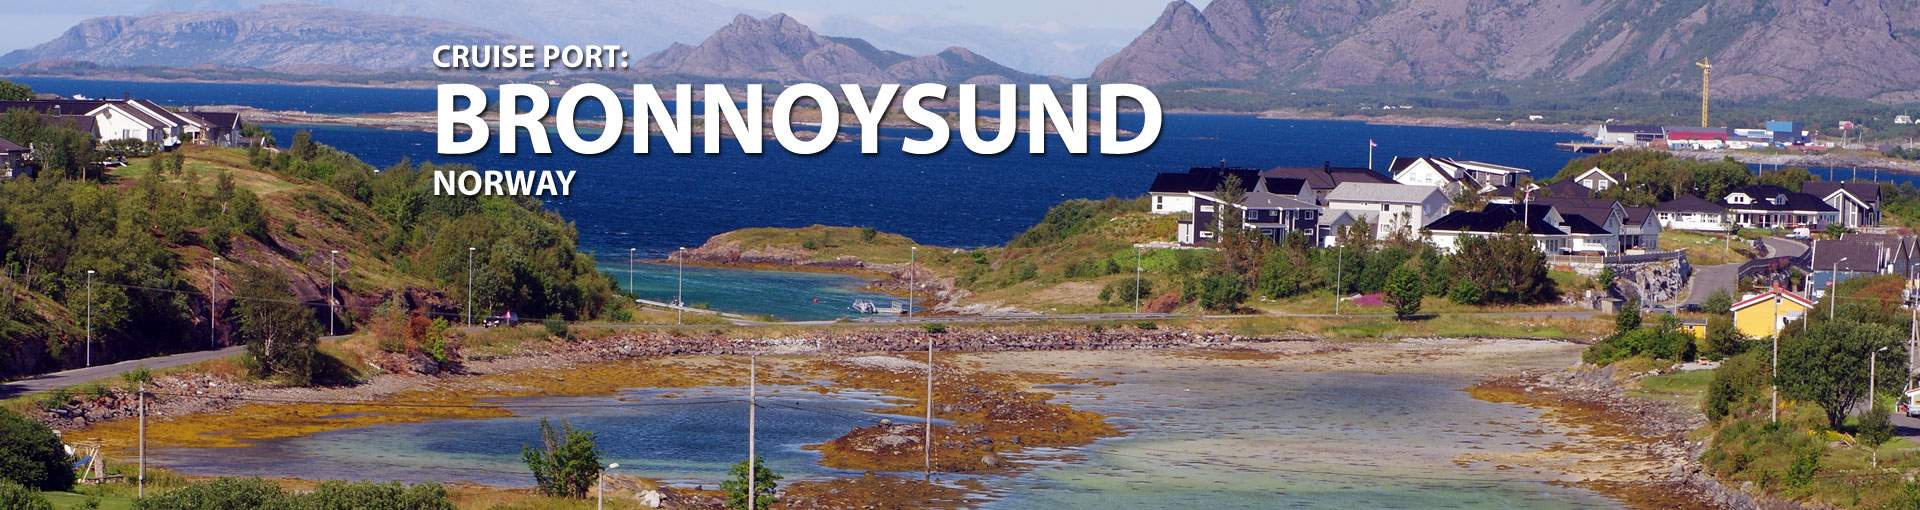 Cruises to Bronnoysund, Norway